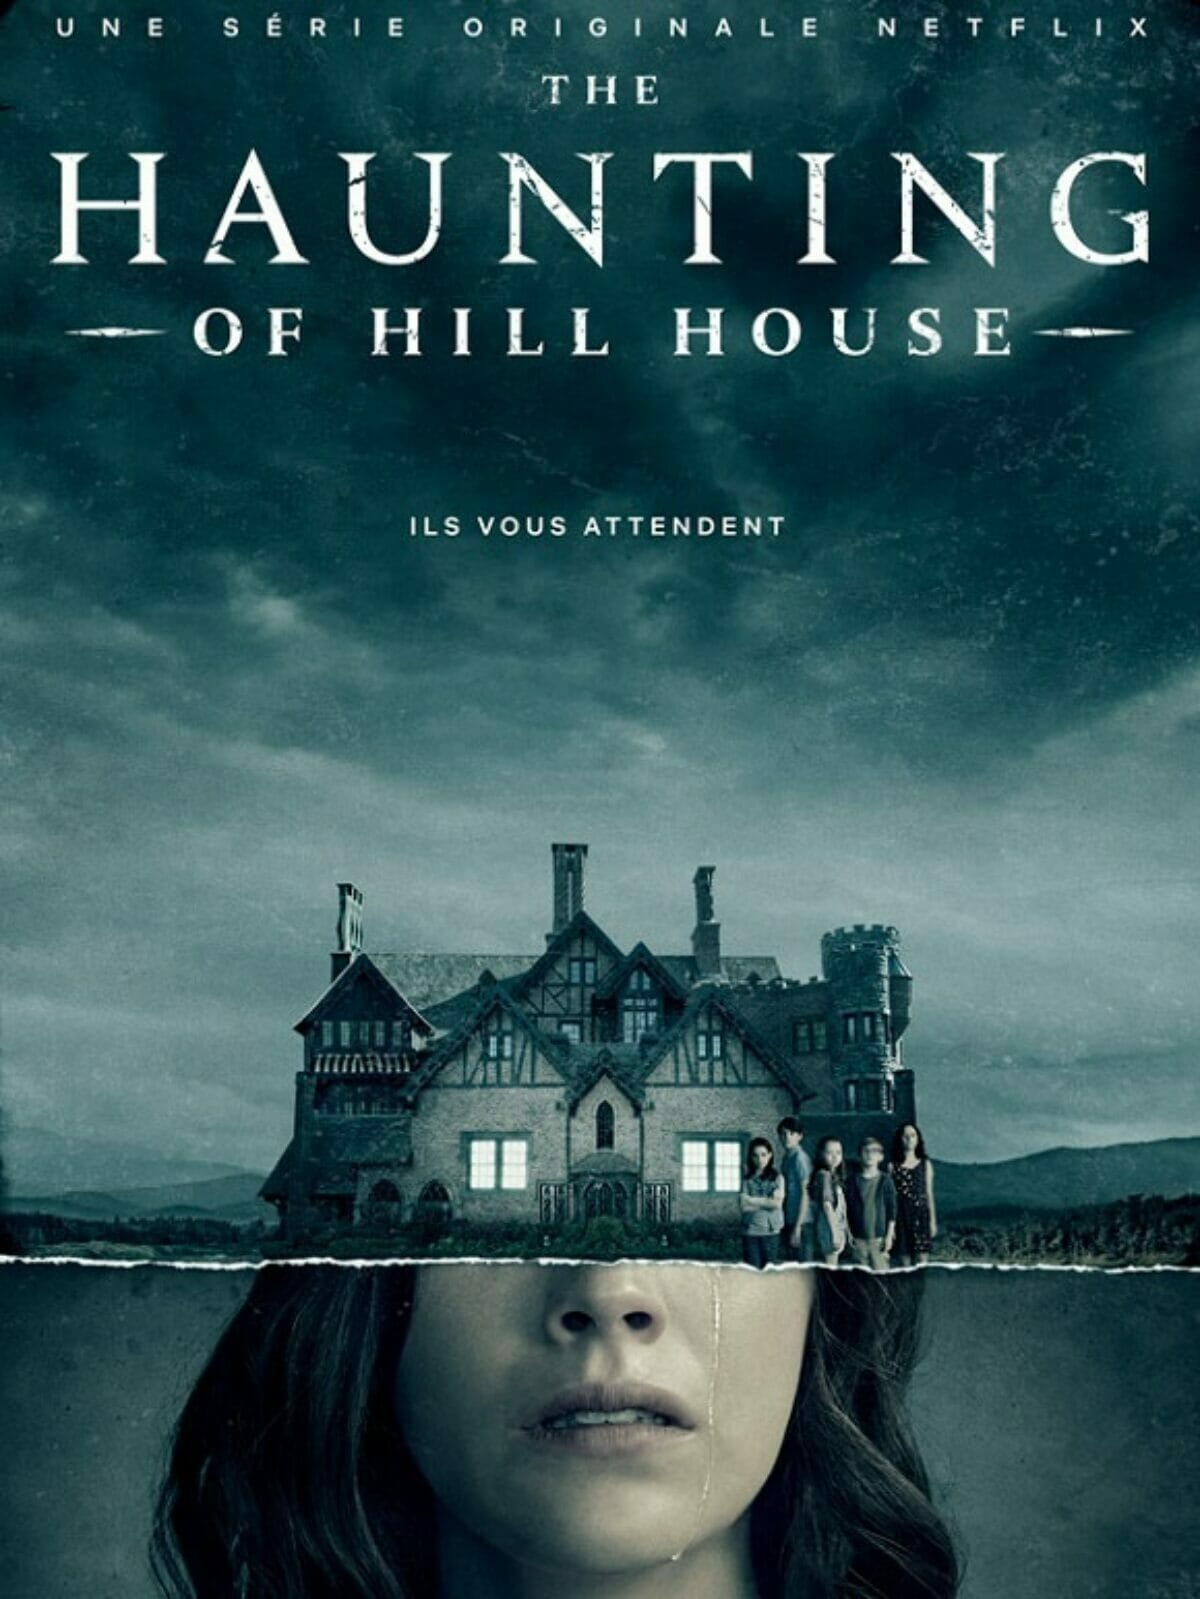 The-Haunting-of-hill-house-poster-s1